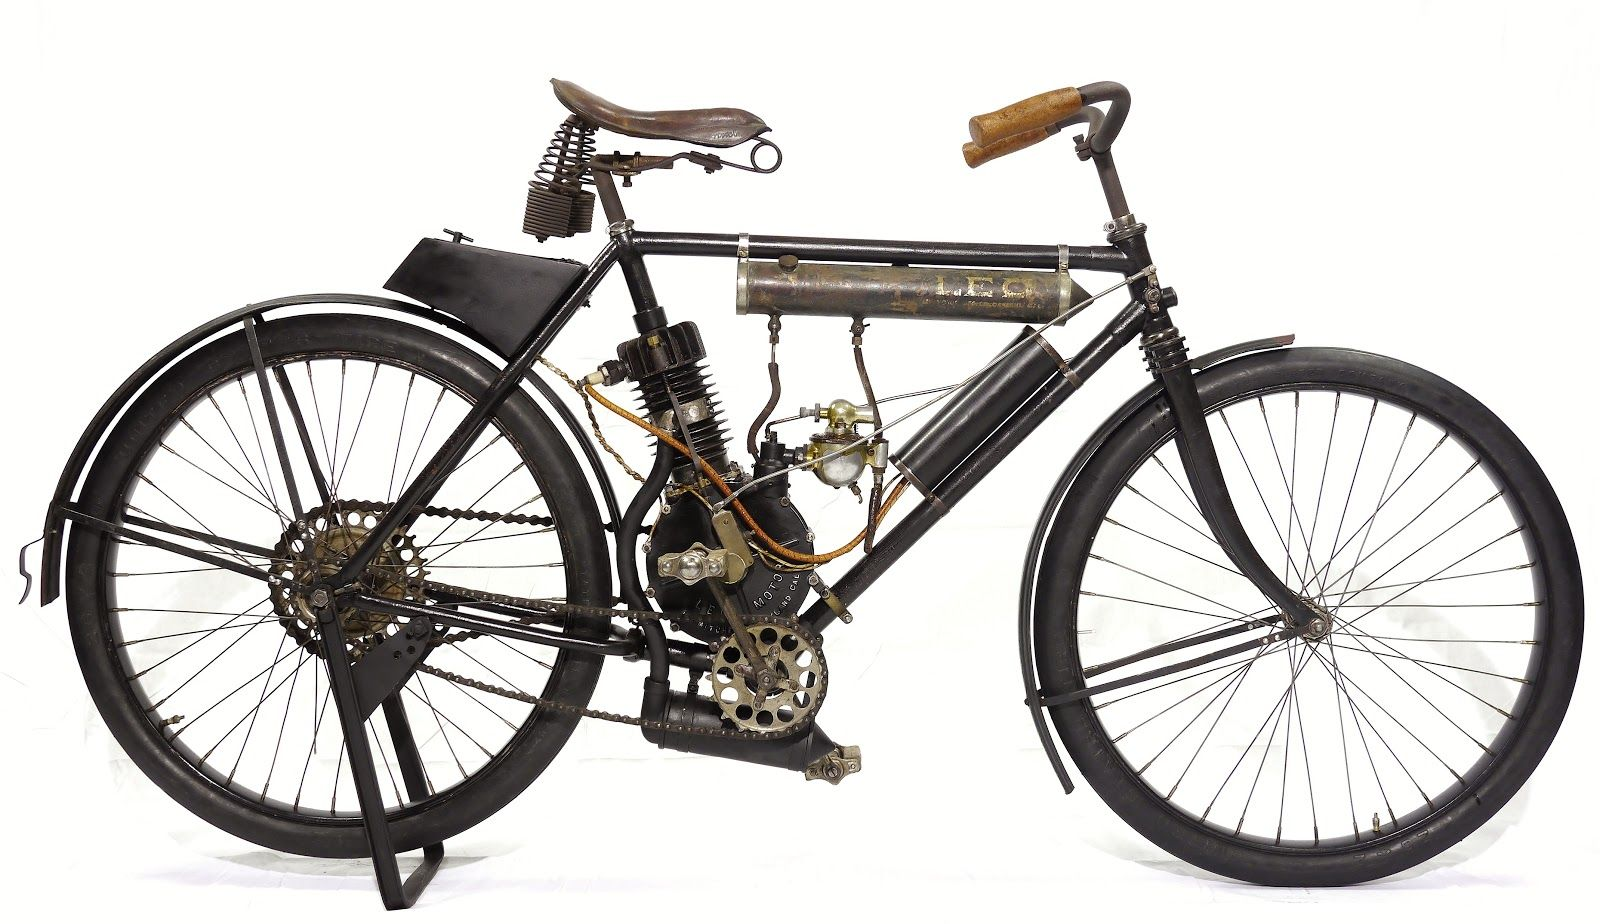 1905 'Leo' motorcycle, made in Oakland, CA; the only survivor?